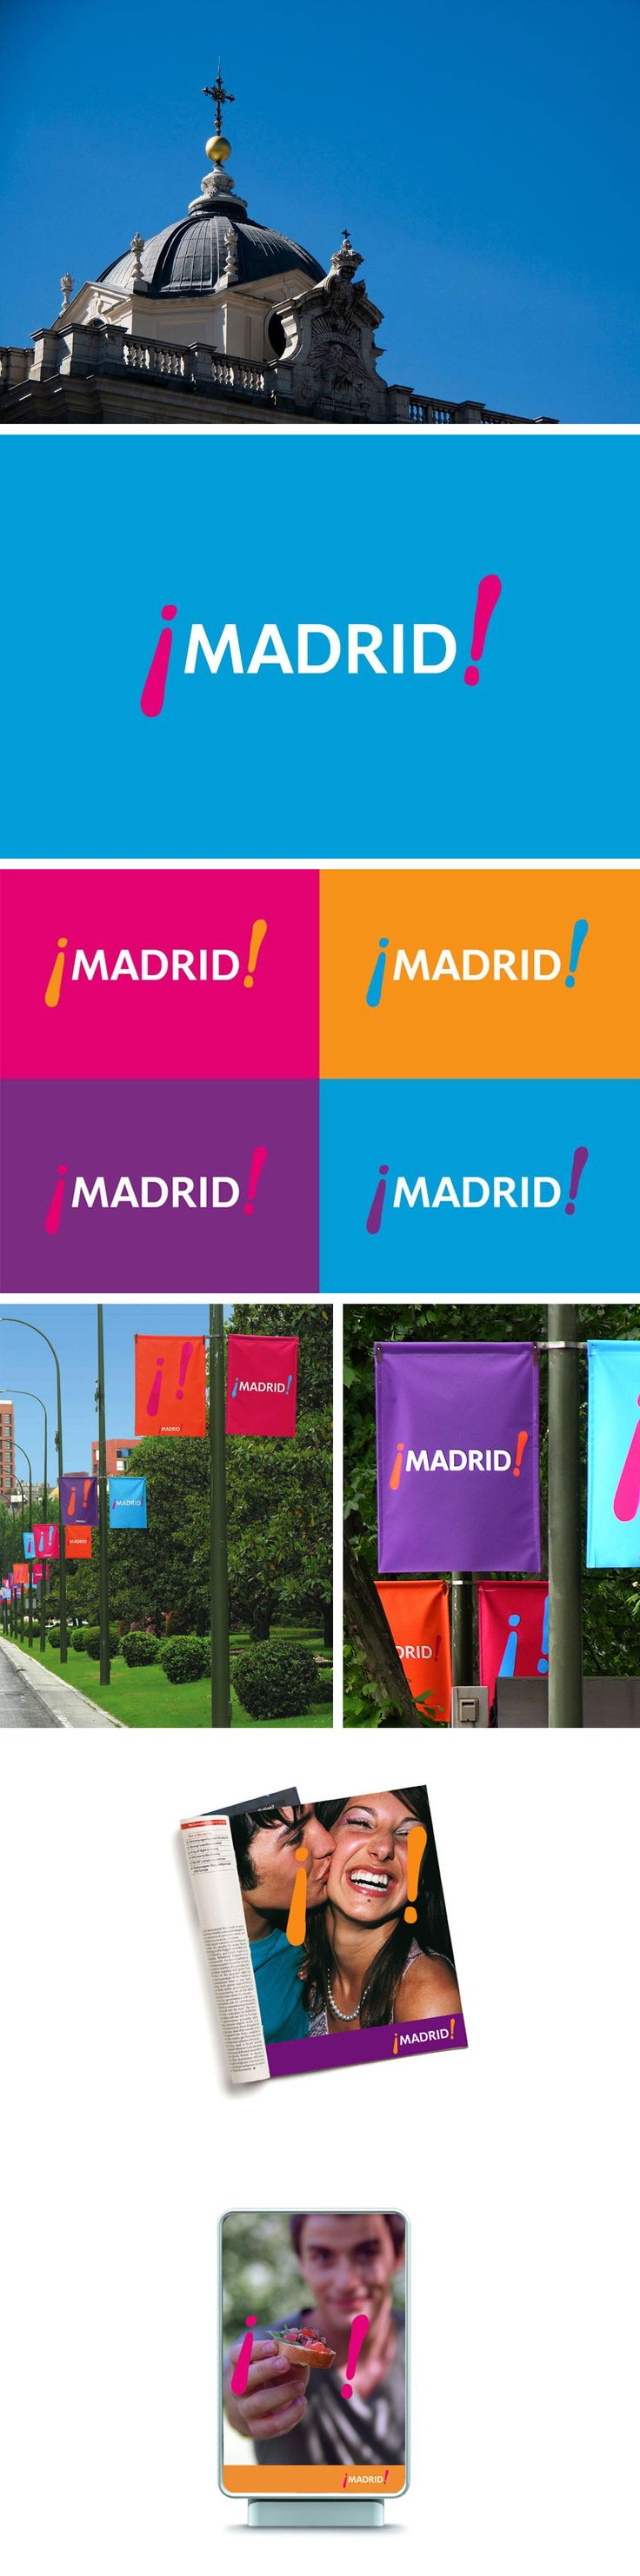 Branding Madrid, Spain, by Landor #city_brand 2012